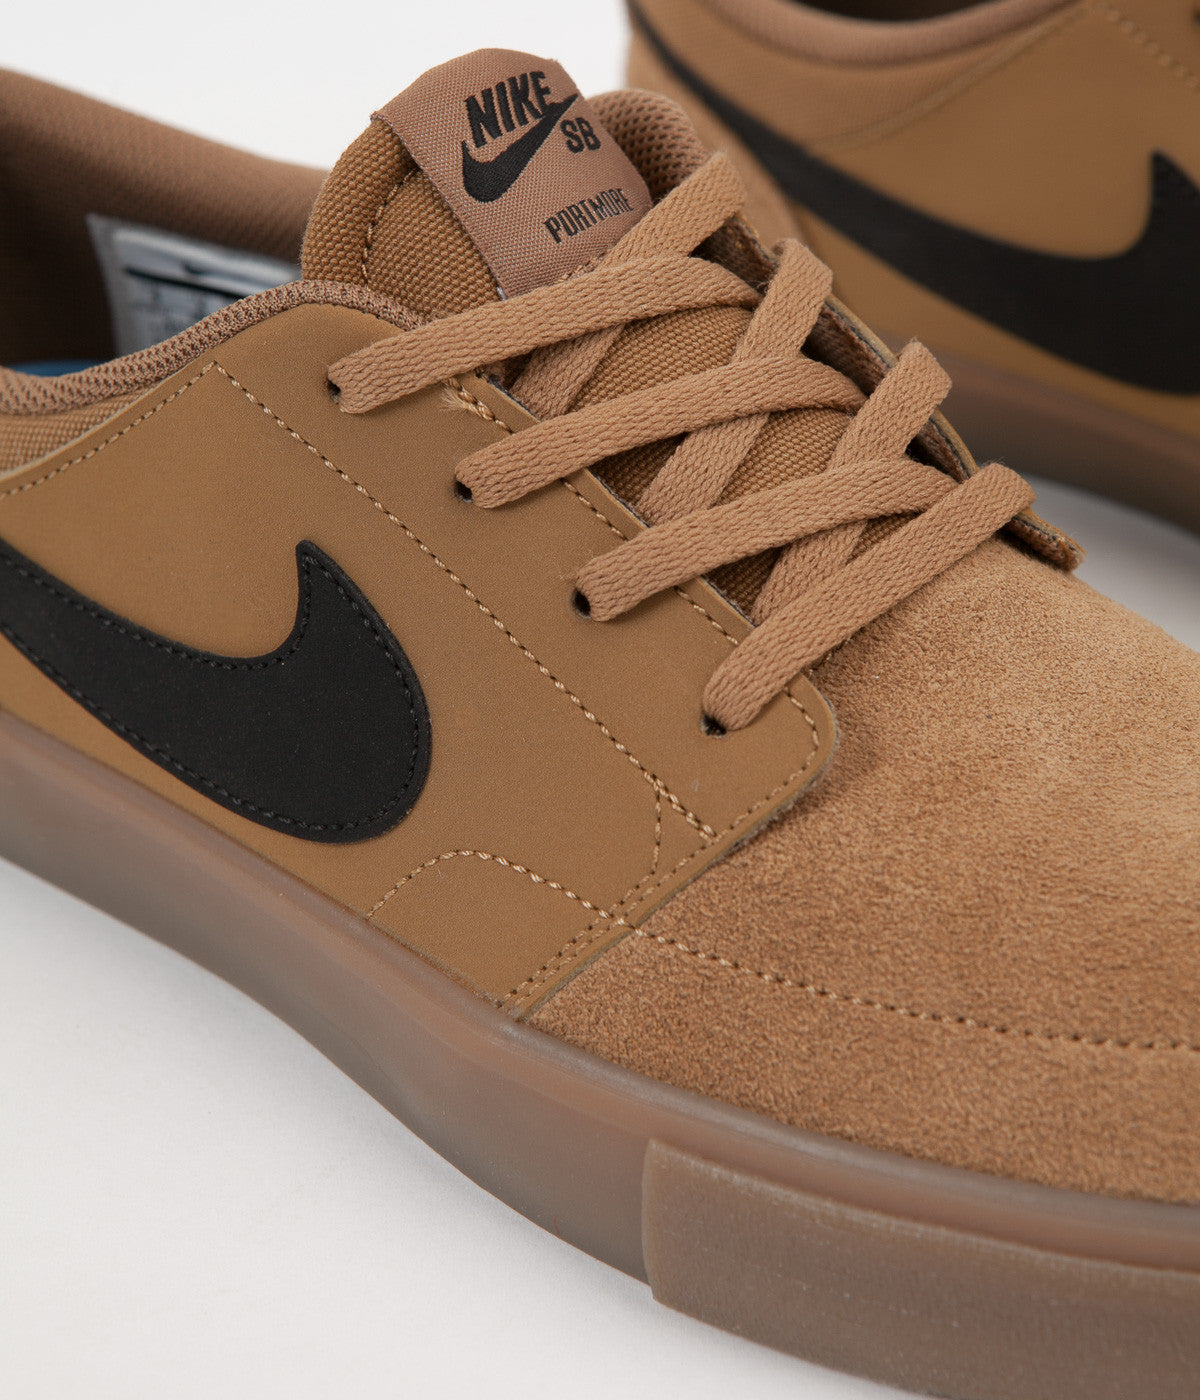 size 40 830ba f470c ... Nike SB Solarsoft Portmore II Shoes - Golden Beige  Black - Gum Light  Brown ...